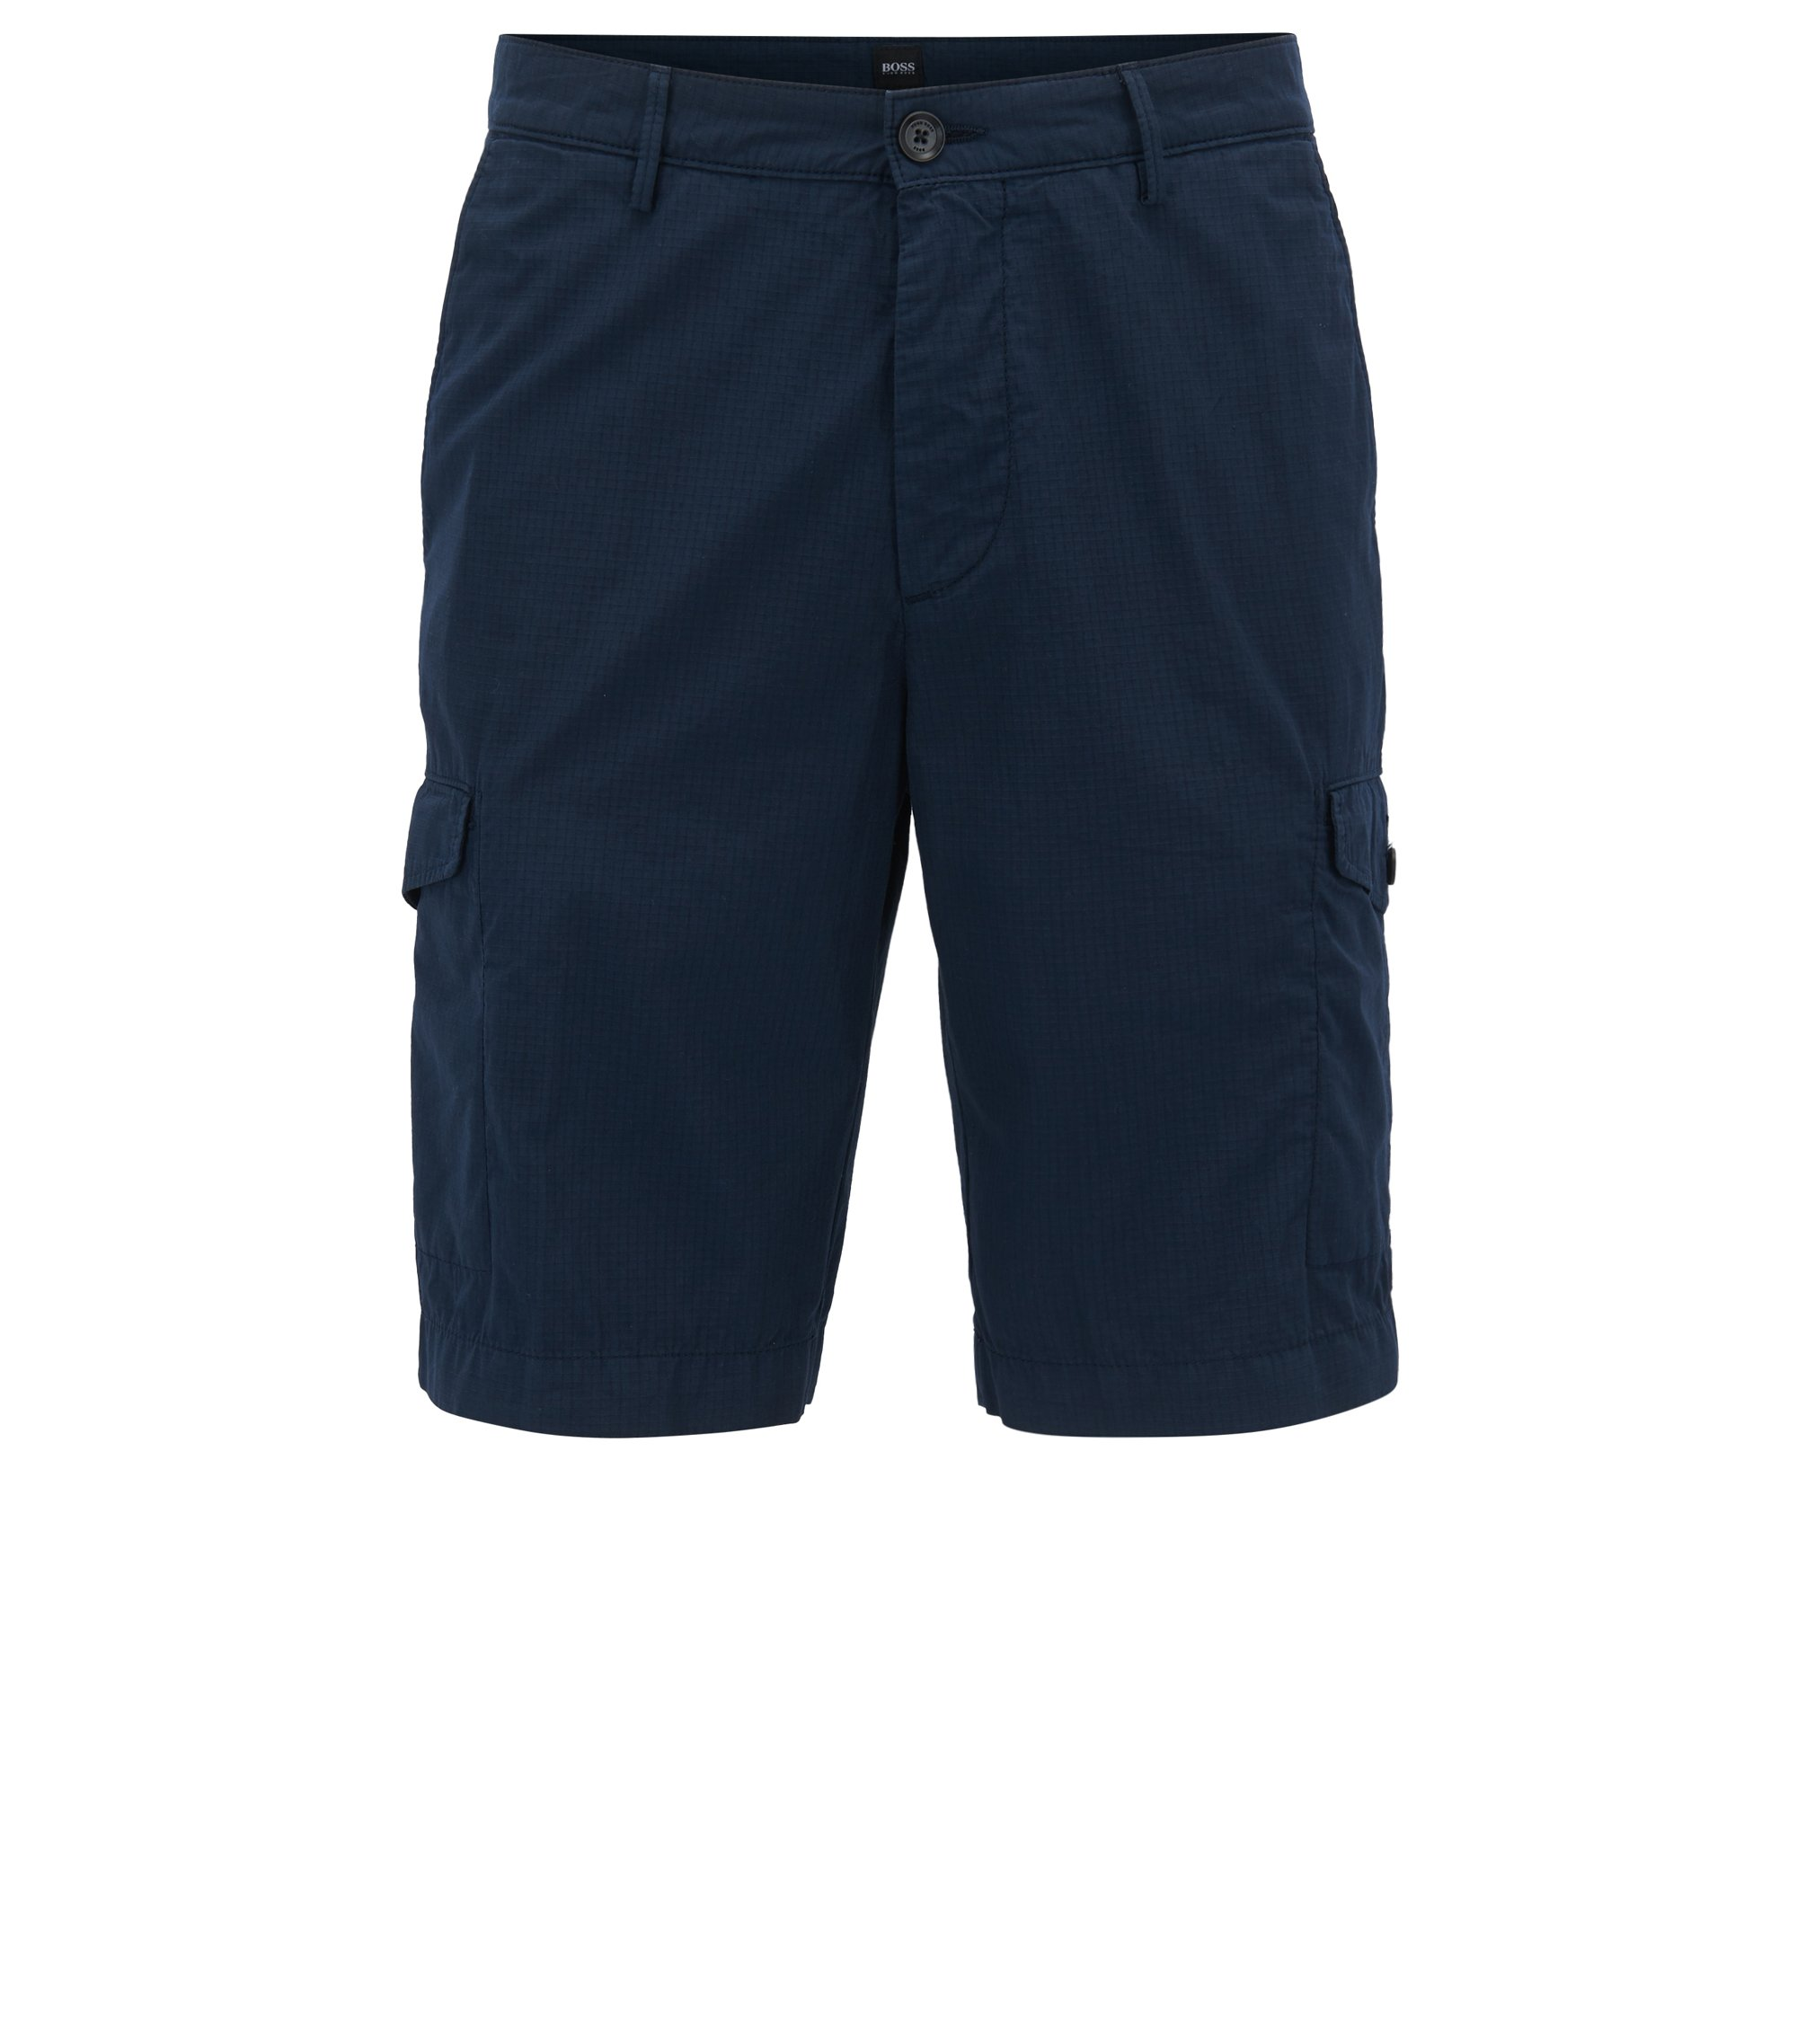 Cargo Short, Regular Fit | Crigan Short Cargo D, Dark Blue